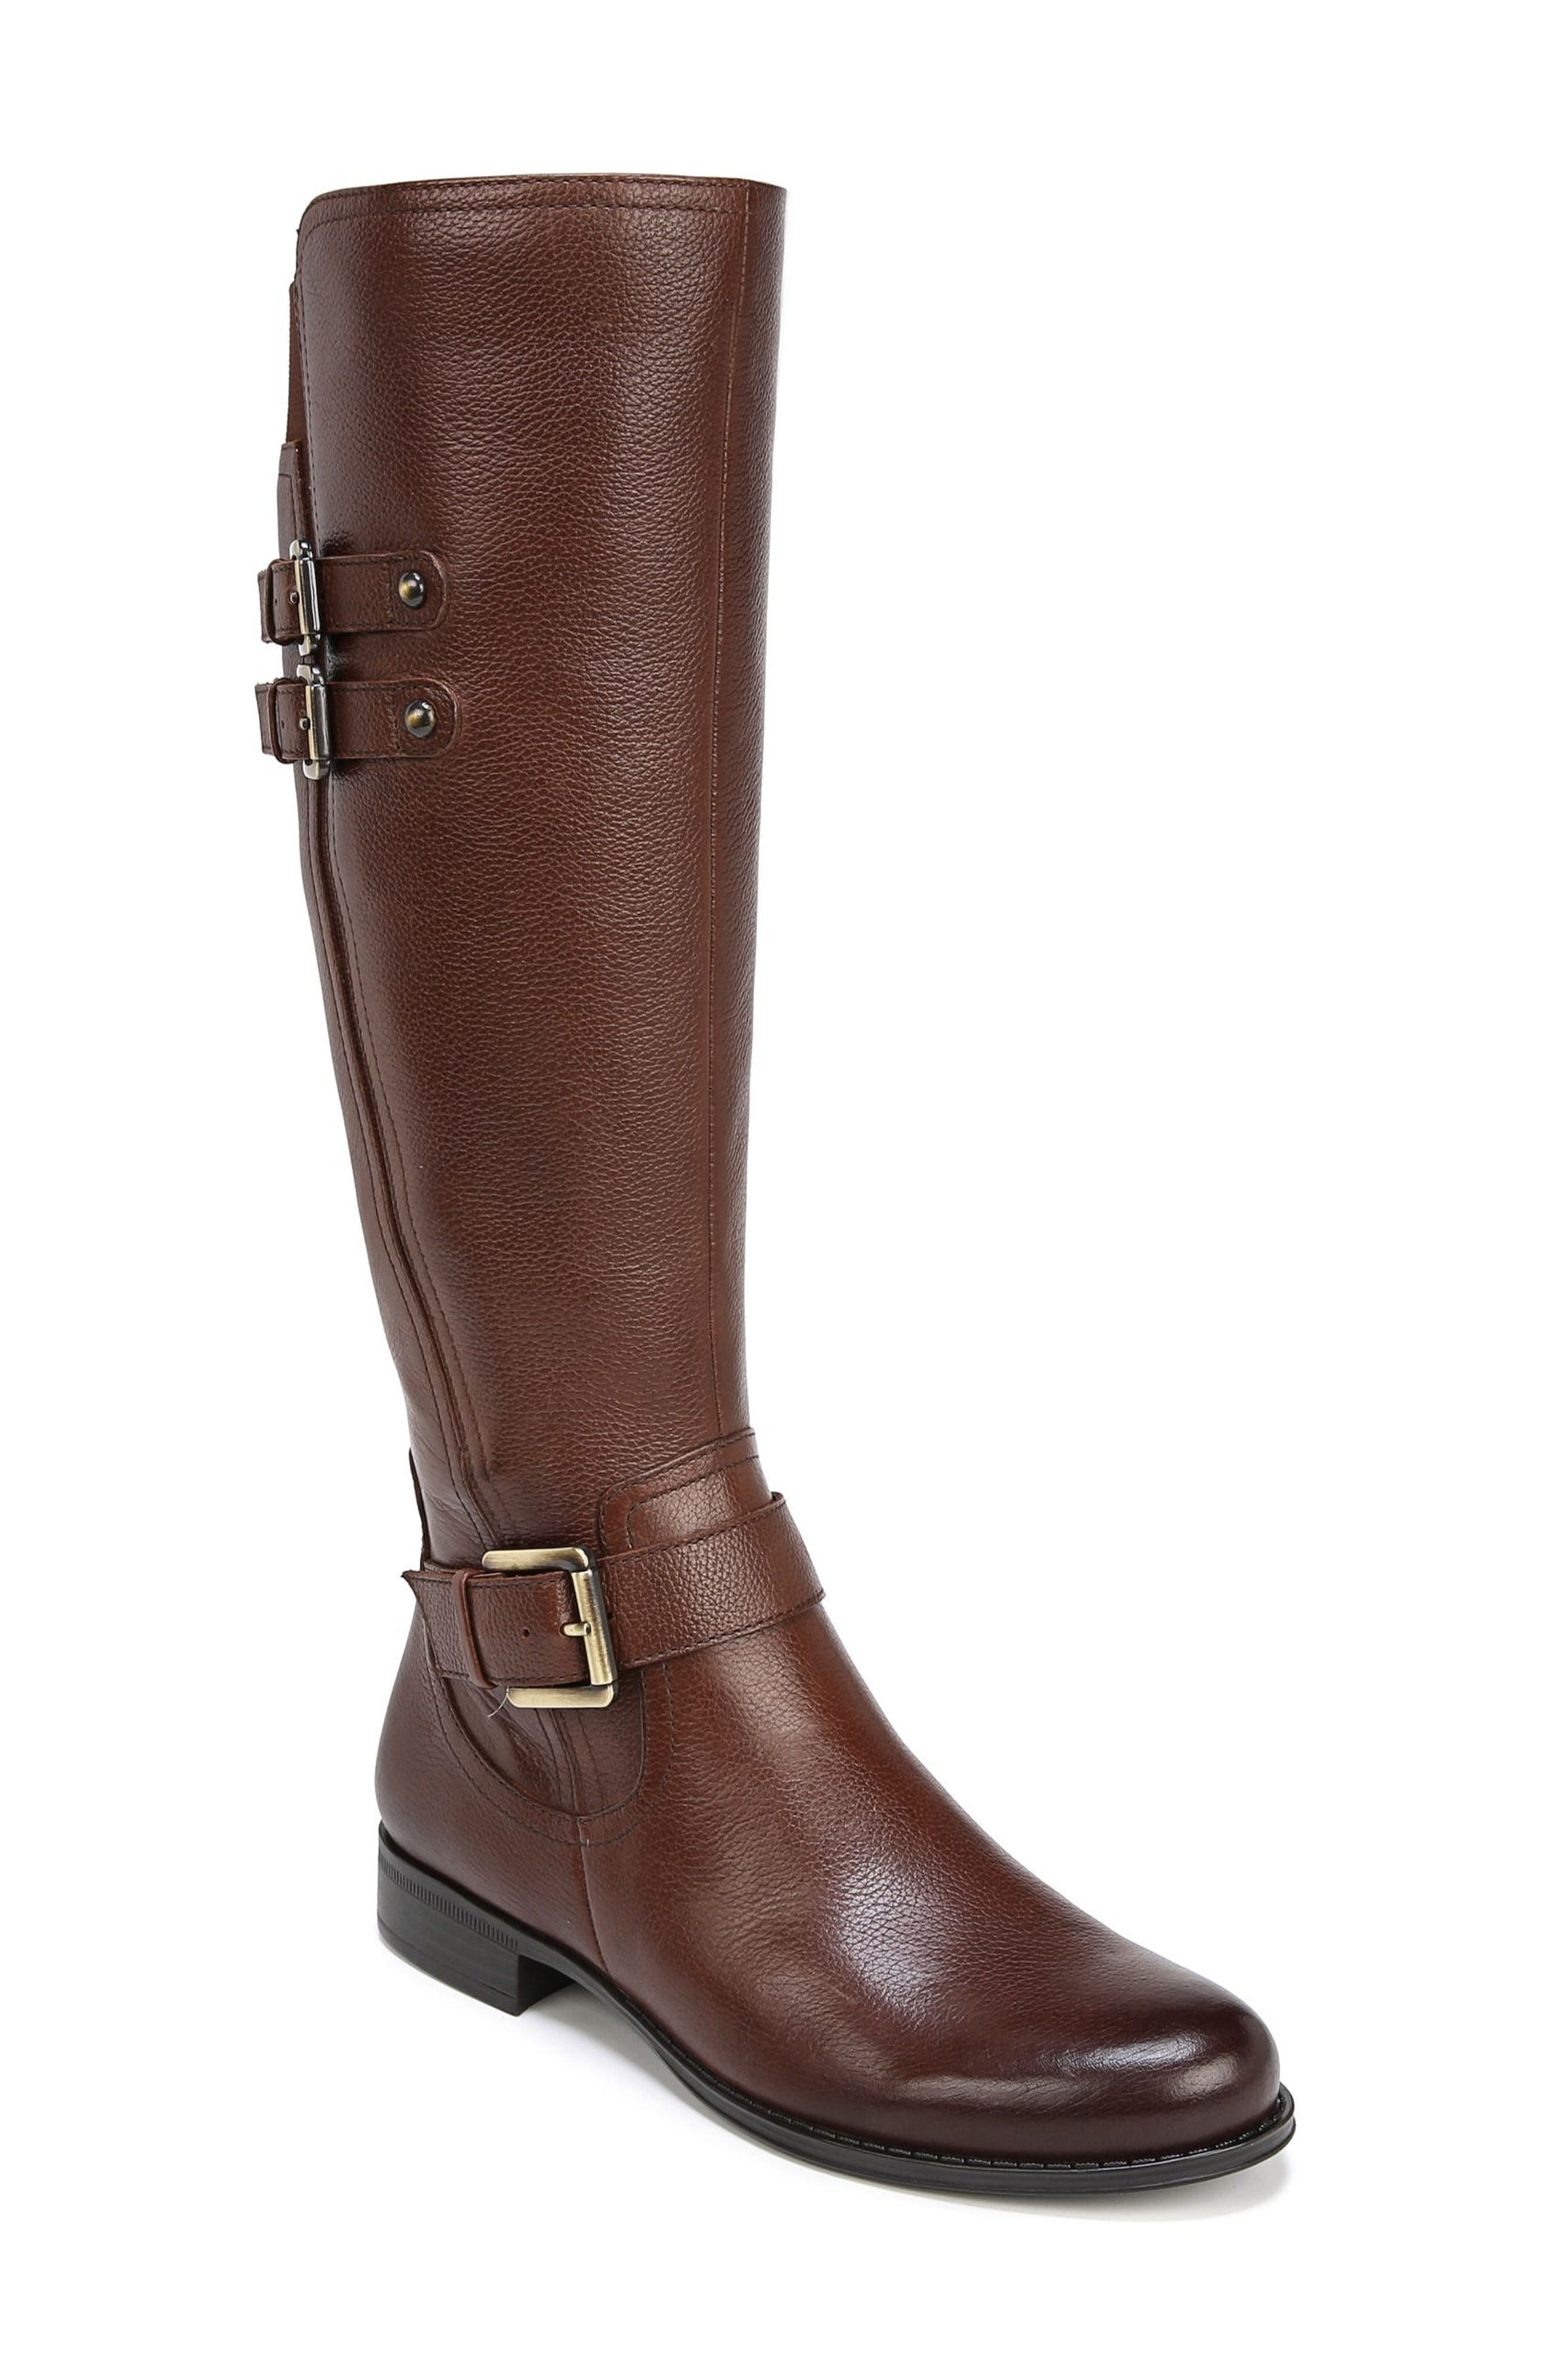 NATURALIZER, Jessie Knee High Riding Boot, Main thumbnail 1, color, CHOCOLATE LEATHER